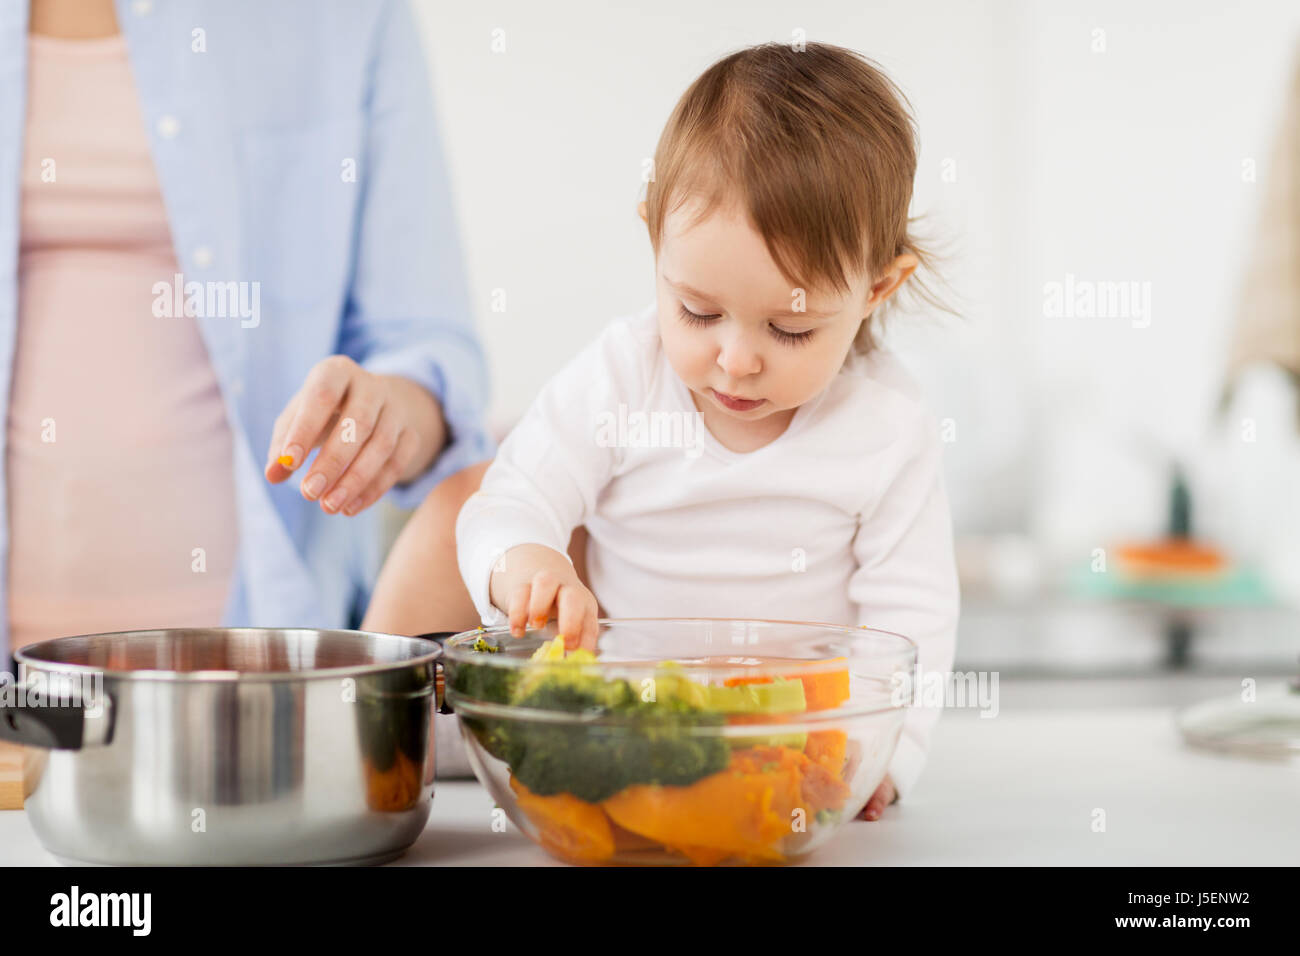 baby with vegetables and mother cooking at home - Stock Image